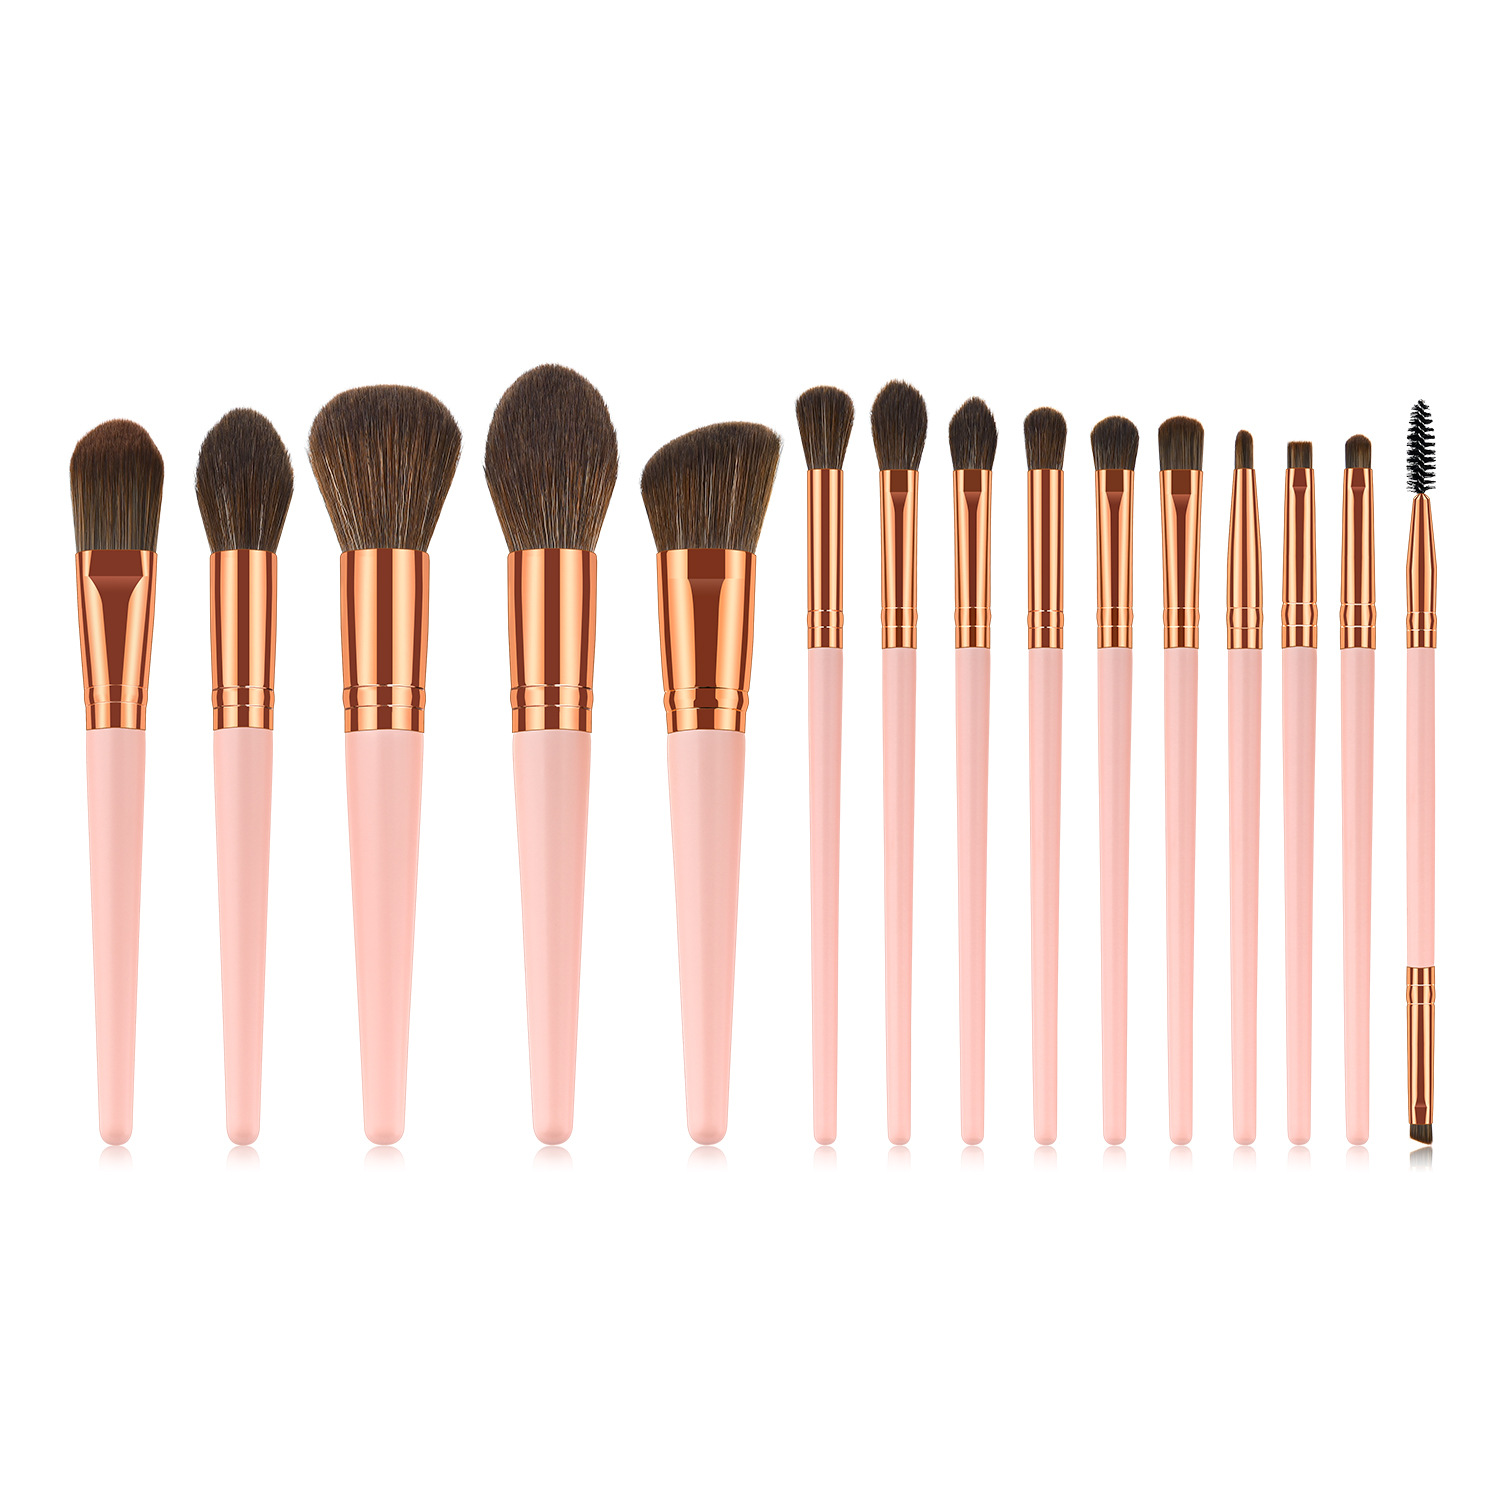 Professional <strong>high</strong> <strong>quality</strong> <strong>makeup</strong> <strong>brush</strong> 15pcs pink natural <strong>makeup</strong> <strong>brushes</strong>